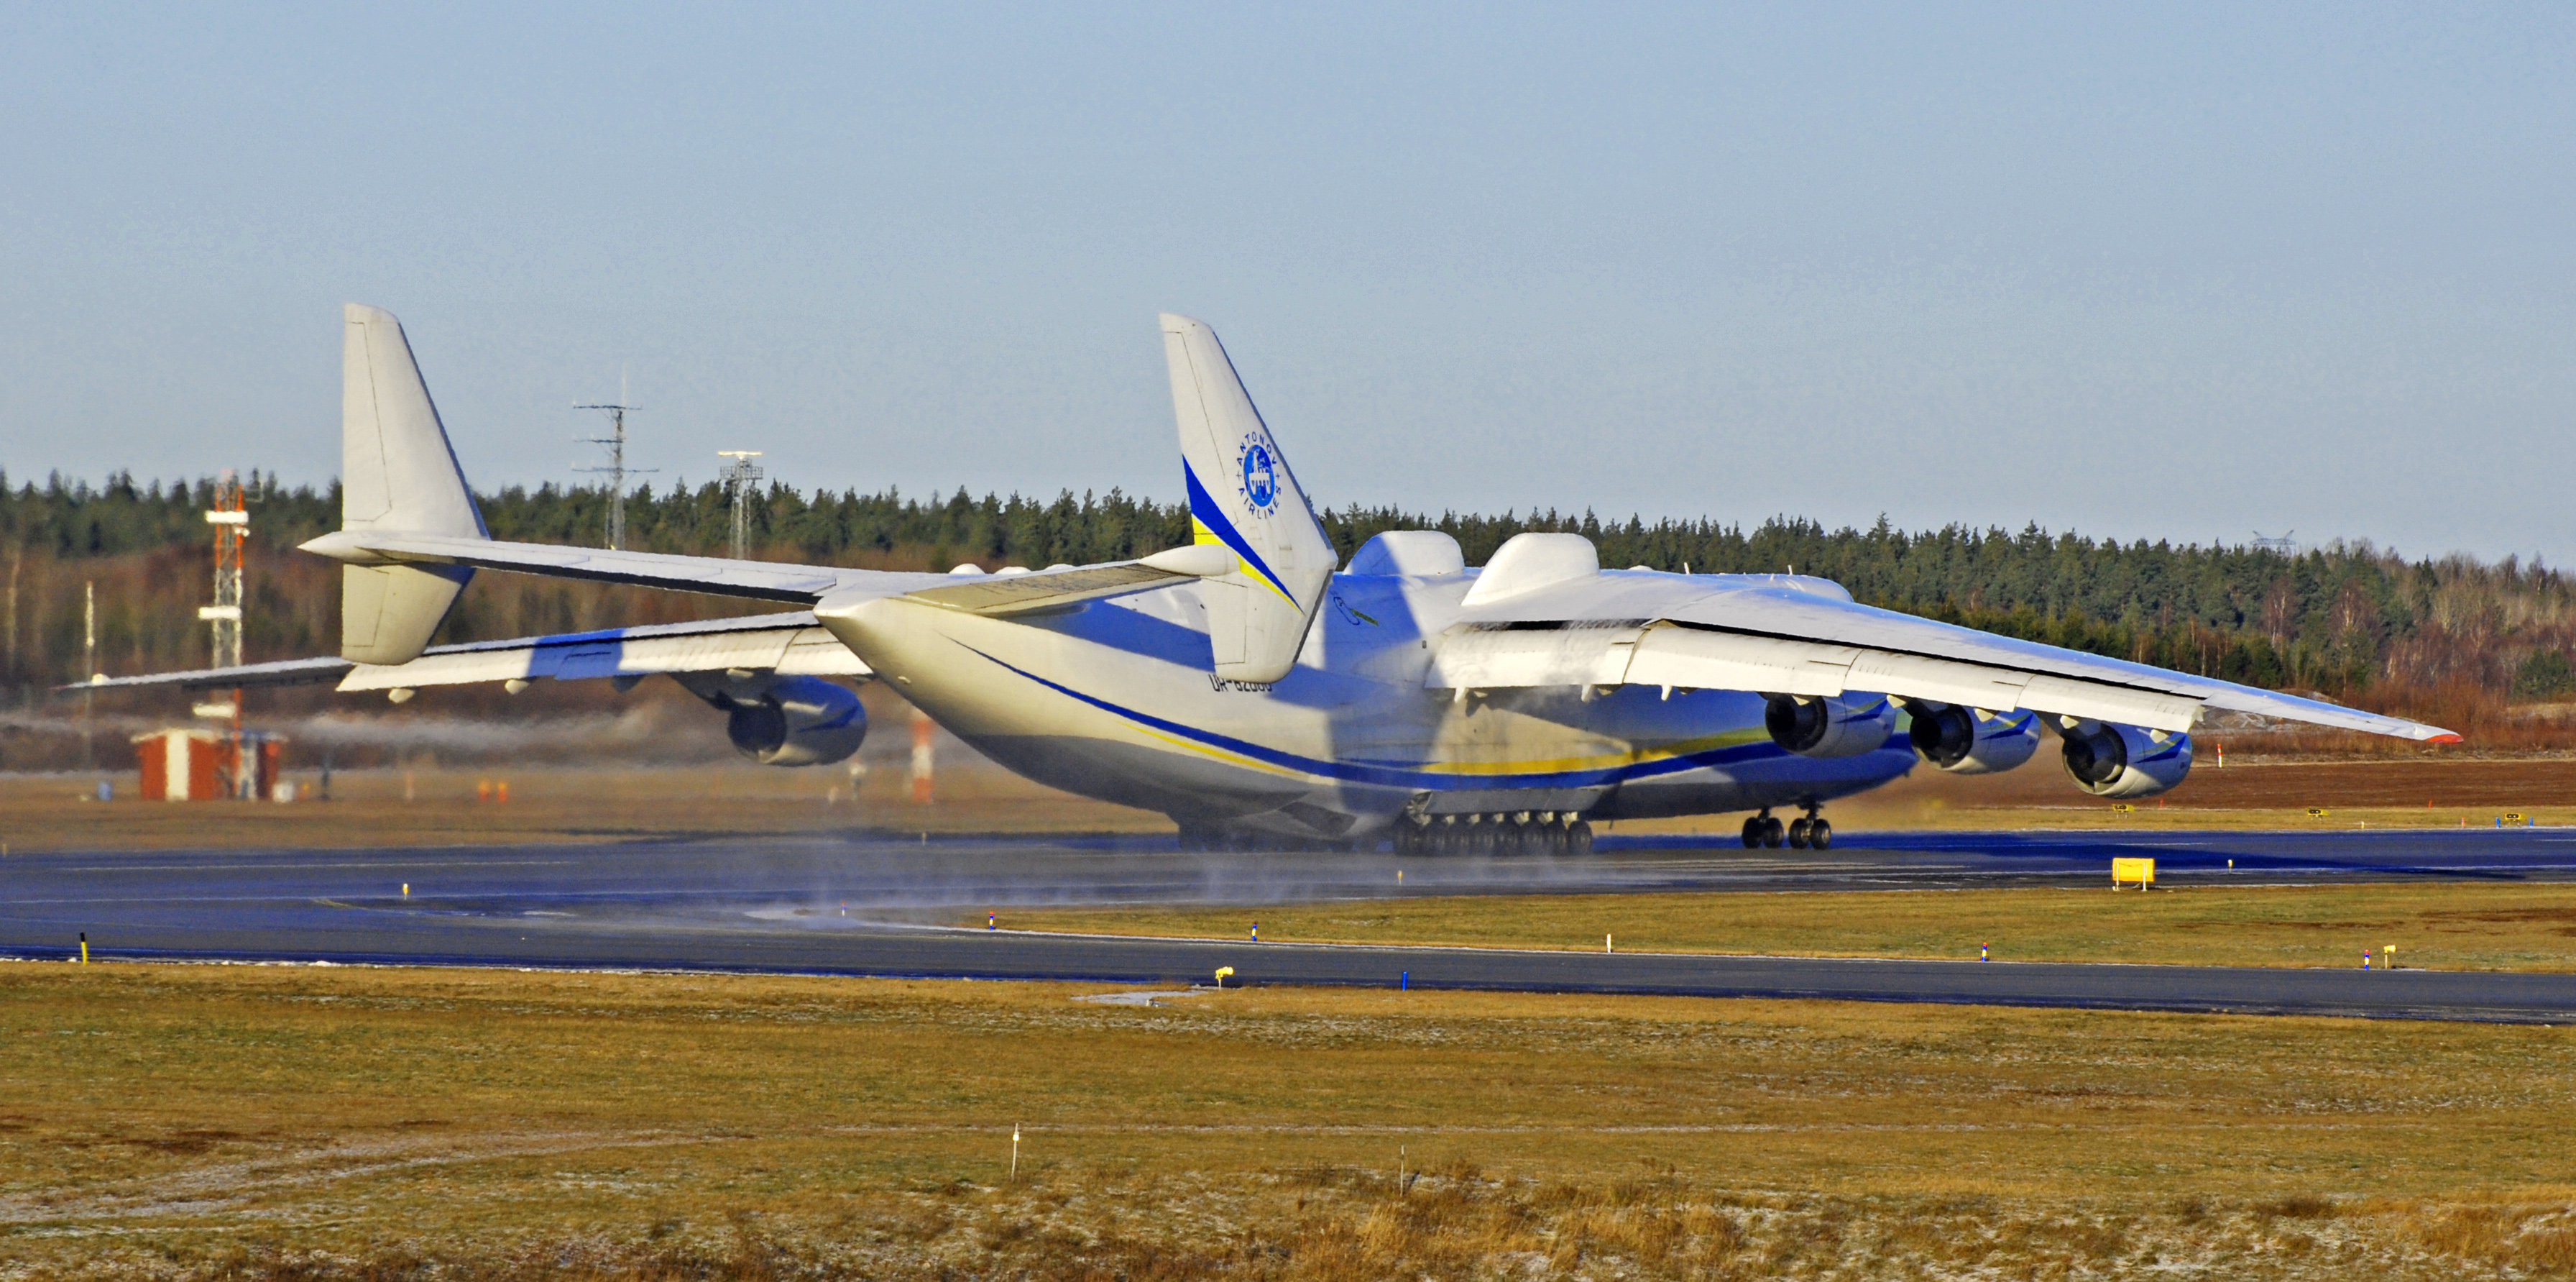 File:Antonov An-225 ready for takeoff.jpg